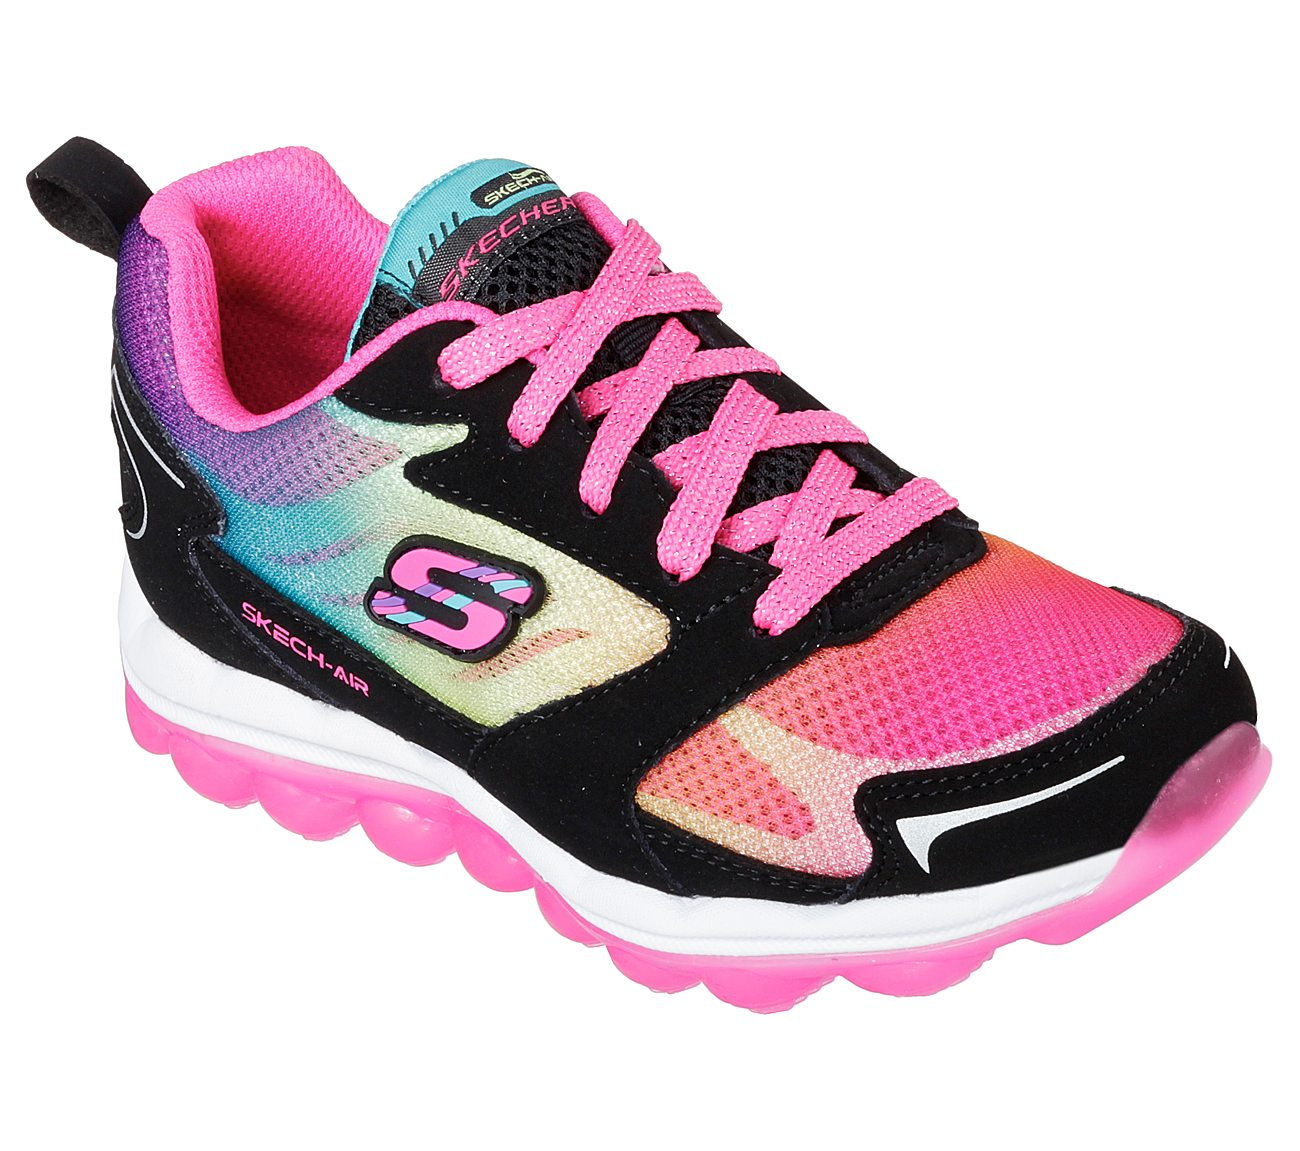 05048a38b4e2 Buy SKECHERS Skech-Air - Bright Bounce Training Shoes Shoes only  52.00